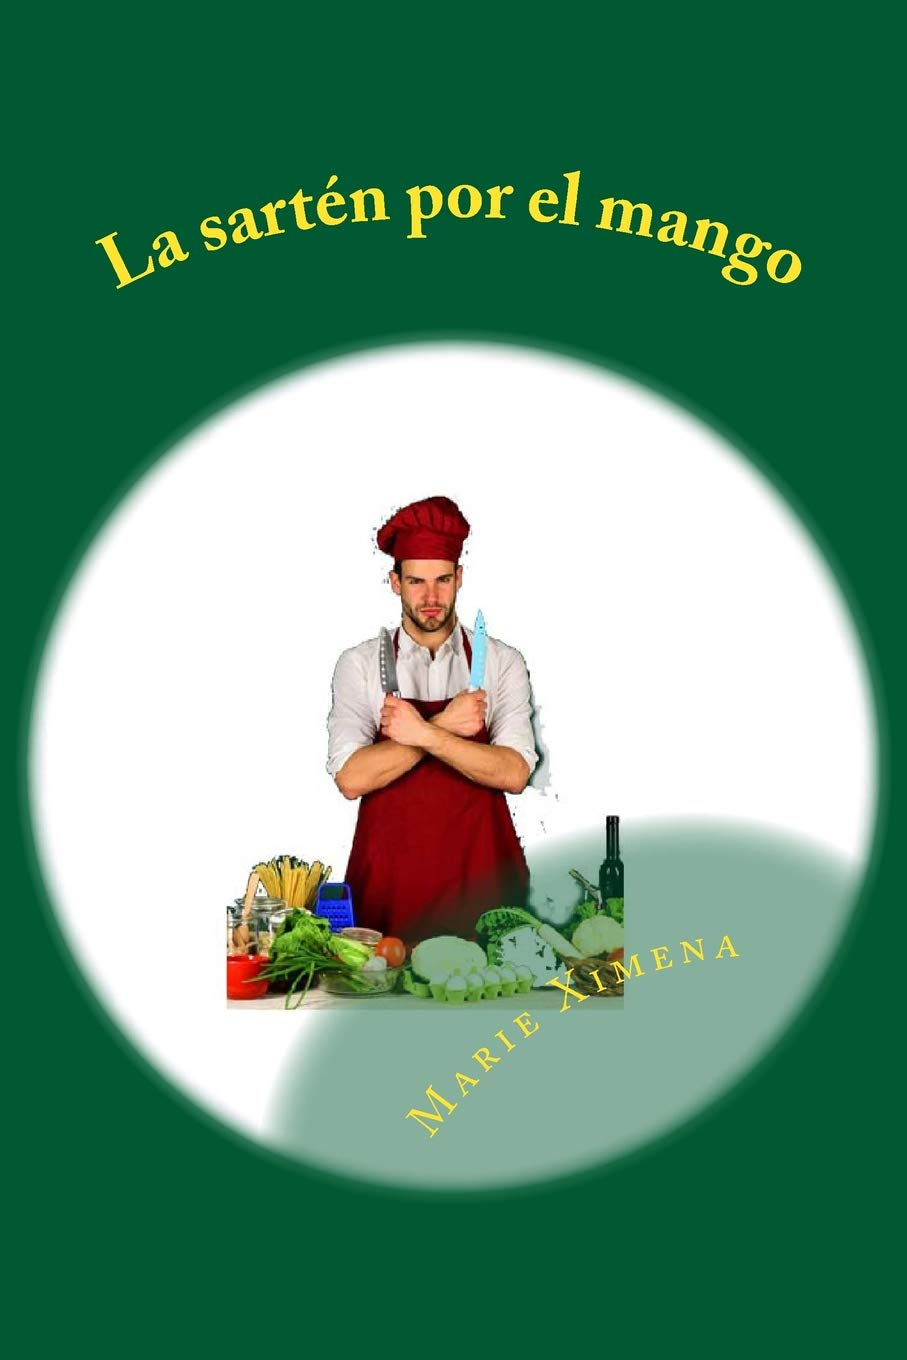 La sarten por el mango (Spanish Edition): Marie Ximena: 9781724586216: Amazon.com: Books